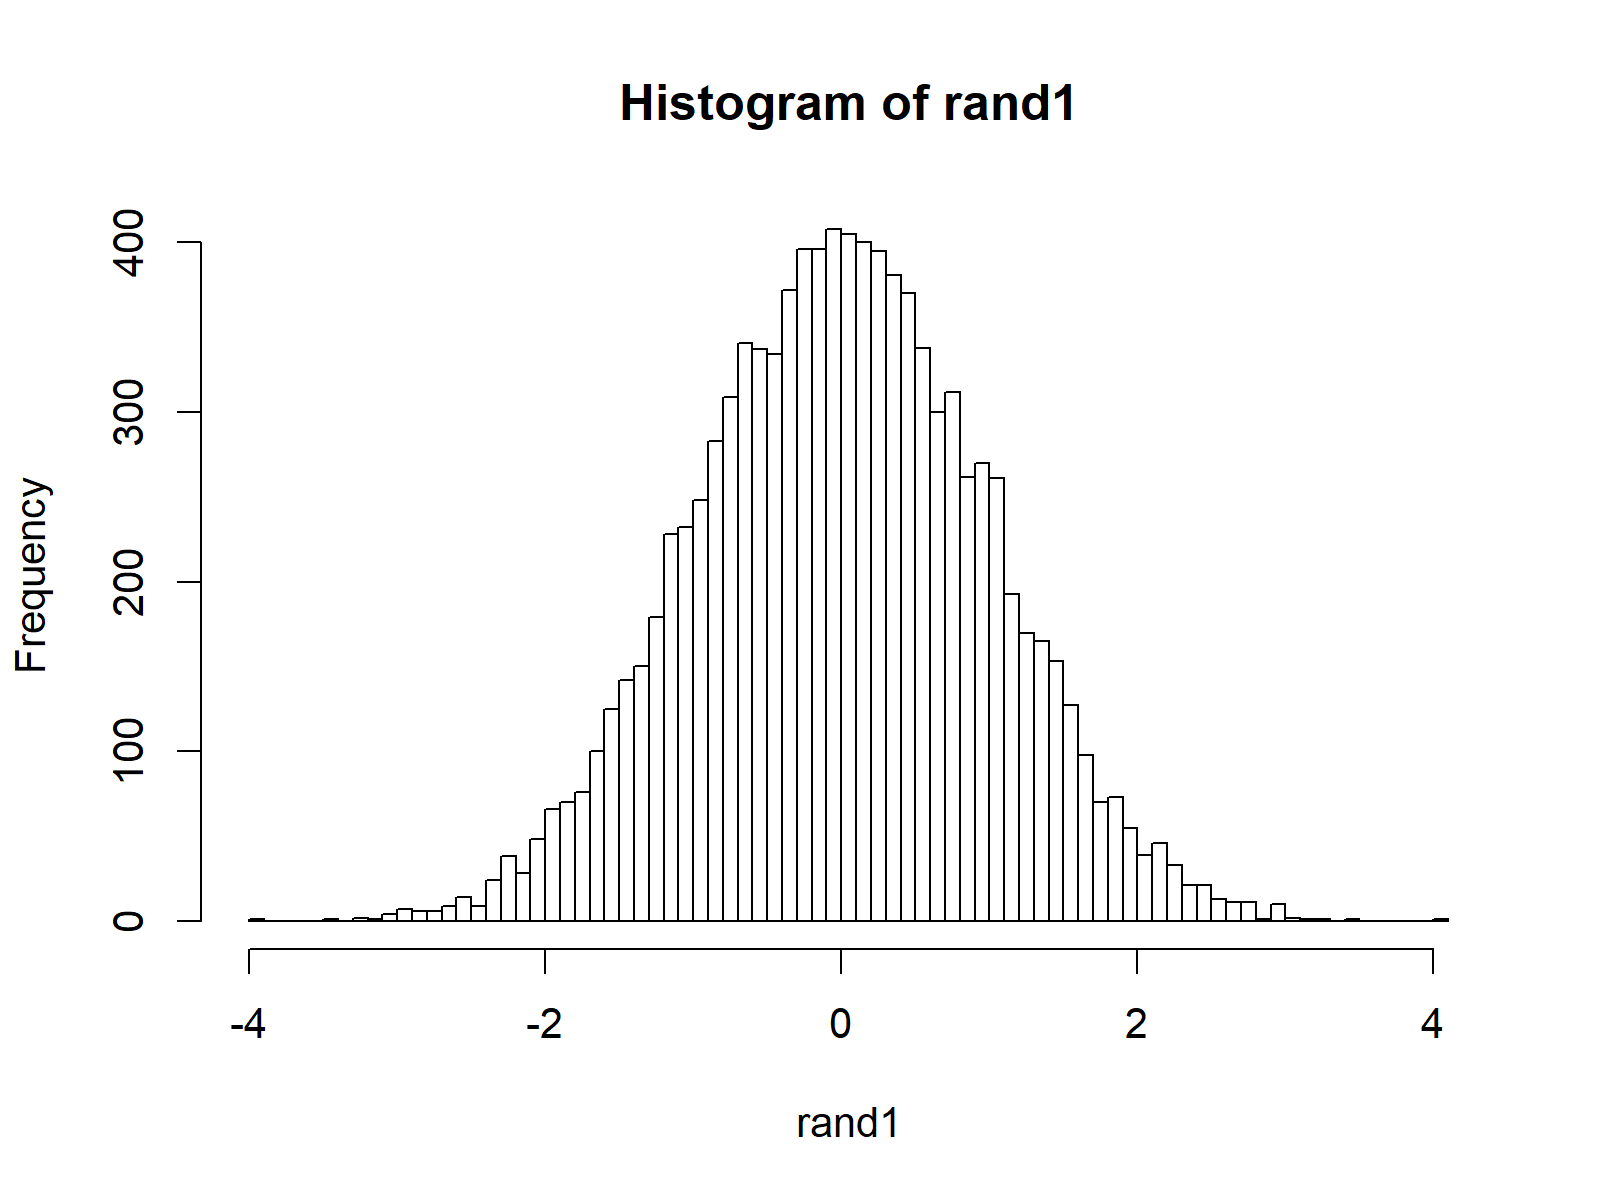 randoms numbers in r with normal distribution